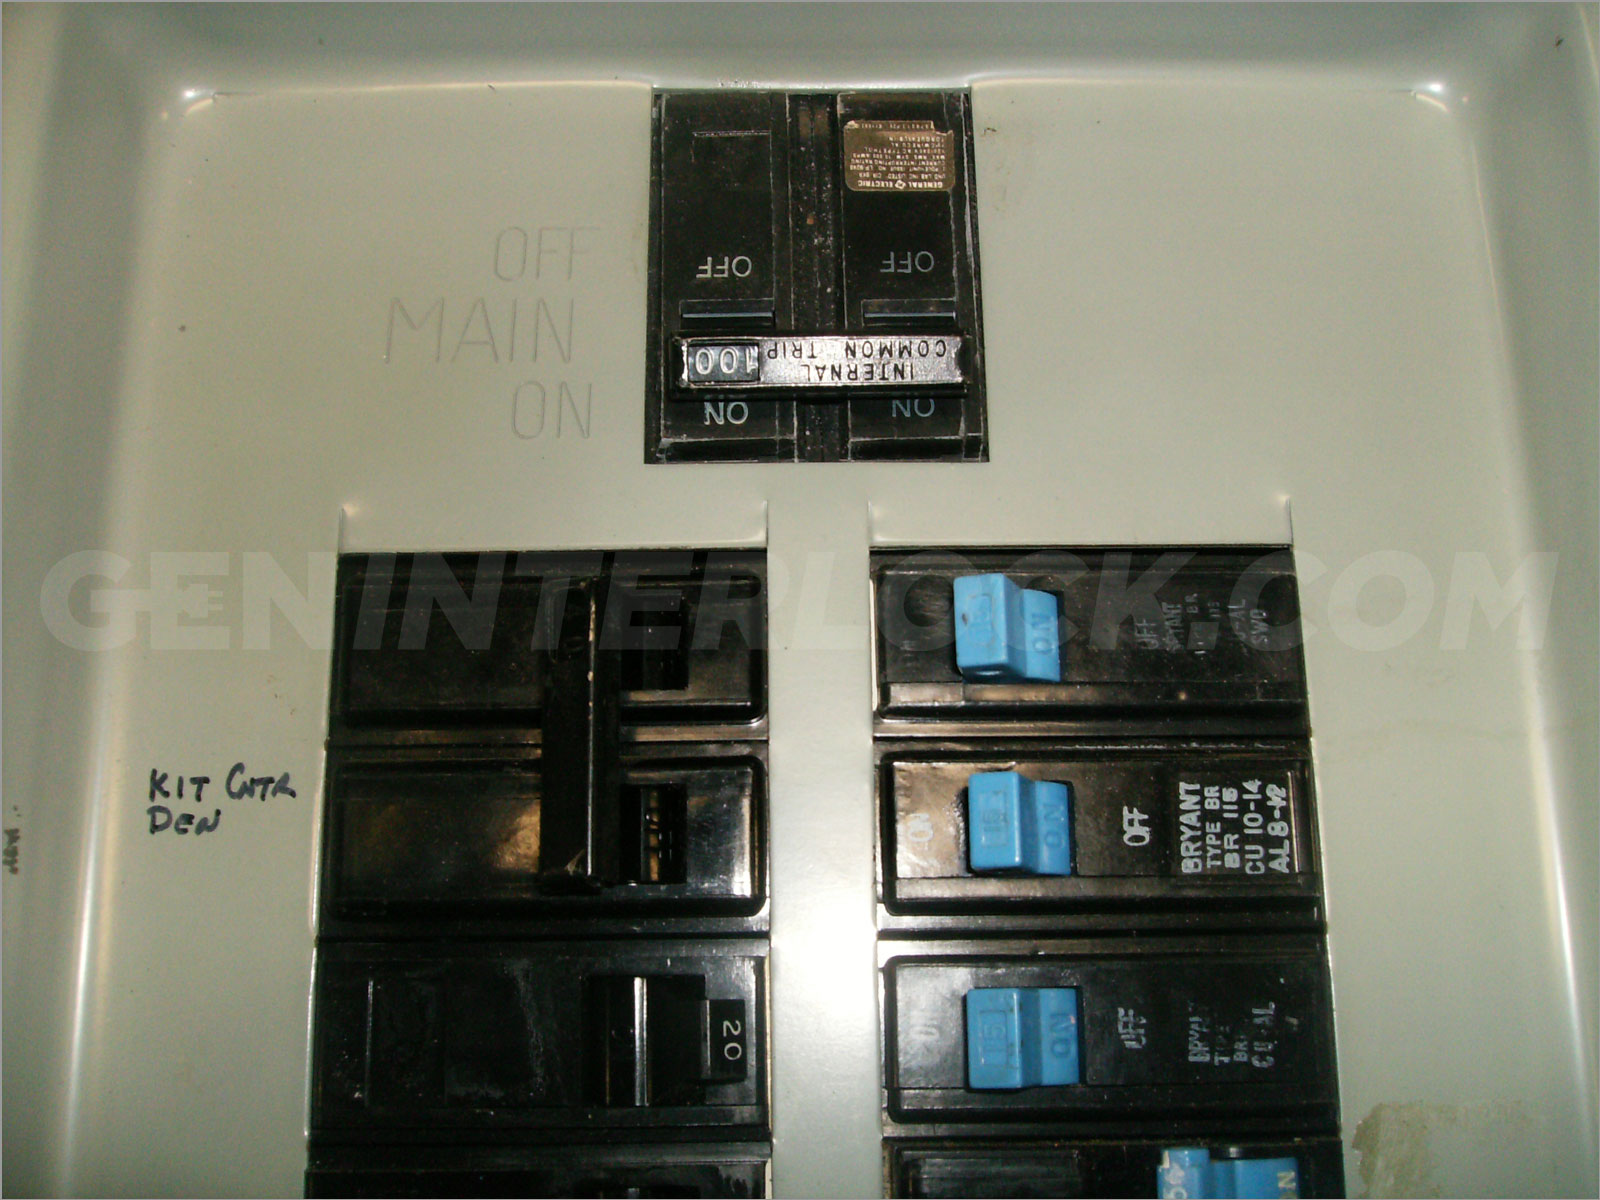 2004 Matrix Fuse Box Ac Interlock Schematics Wiring Diagrams Sylvania Lock Out For Generator 40 2003 Toyota Echo Fuses